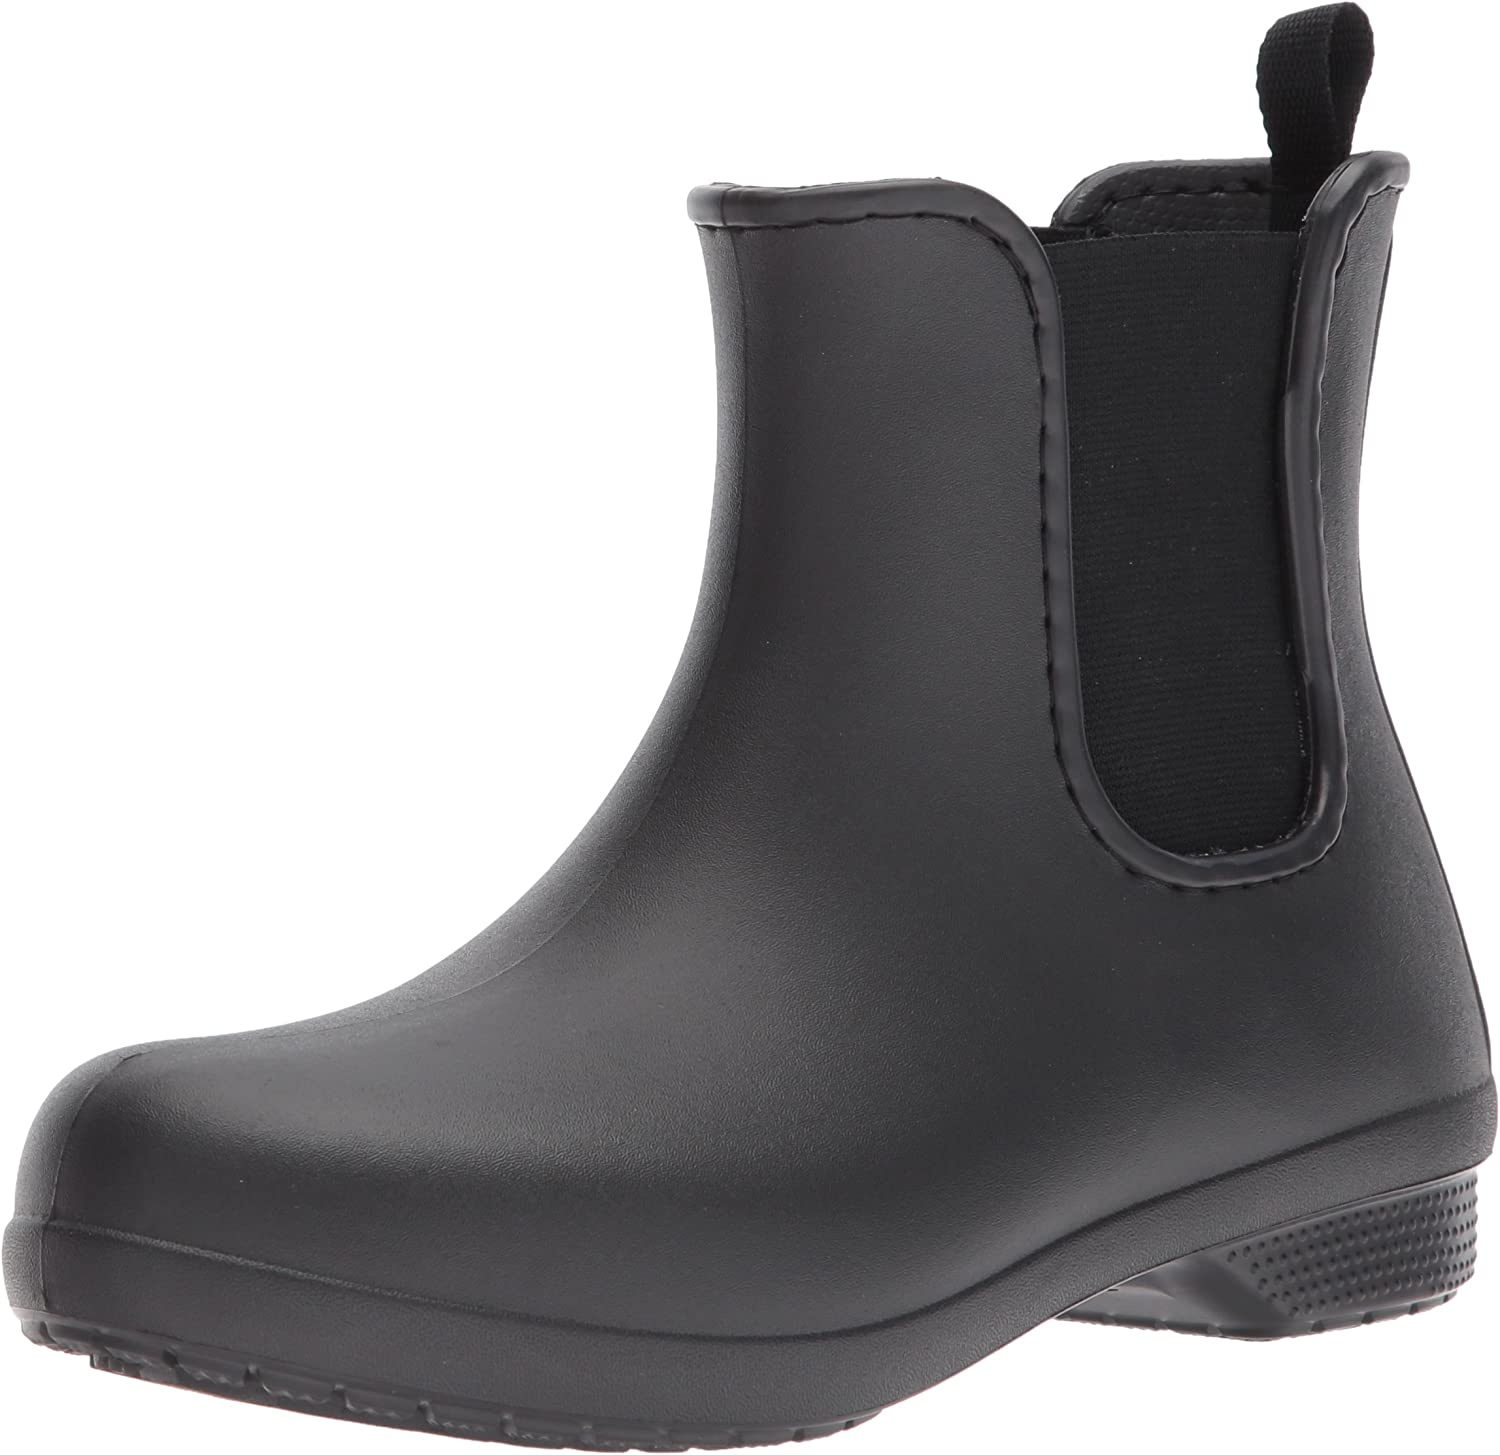 Crocs Women's Freesail Chelsea Boot Rain